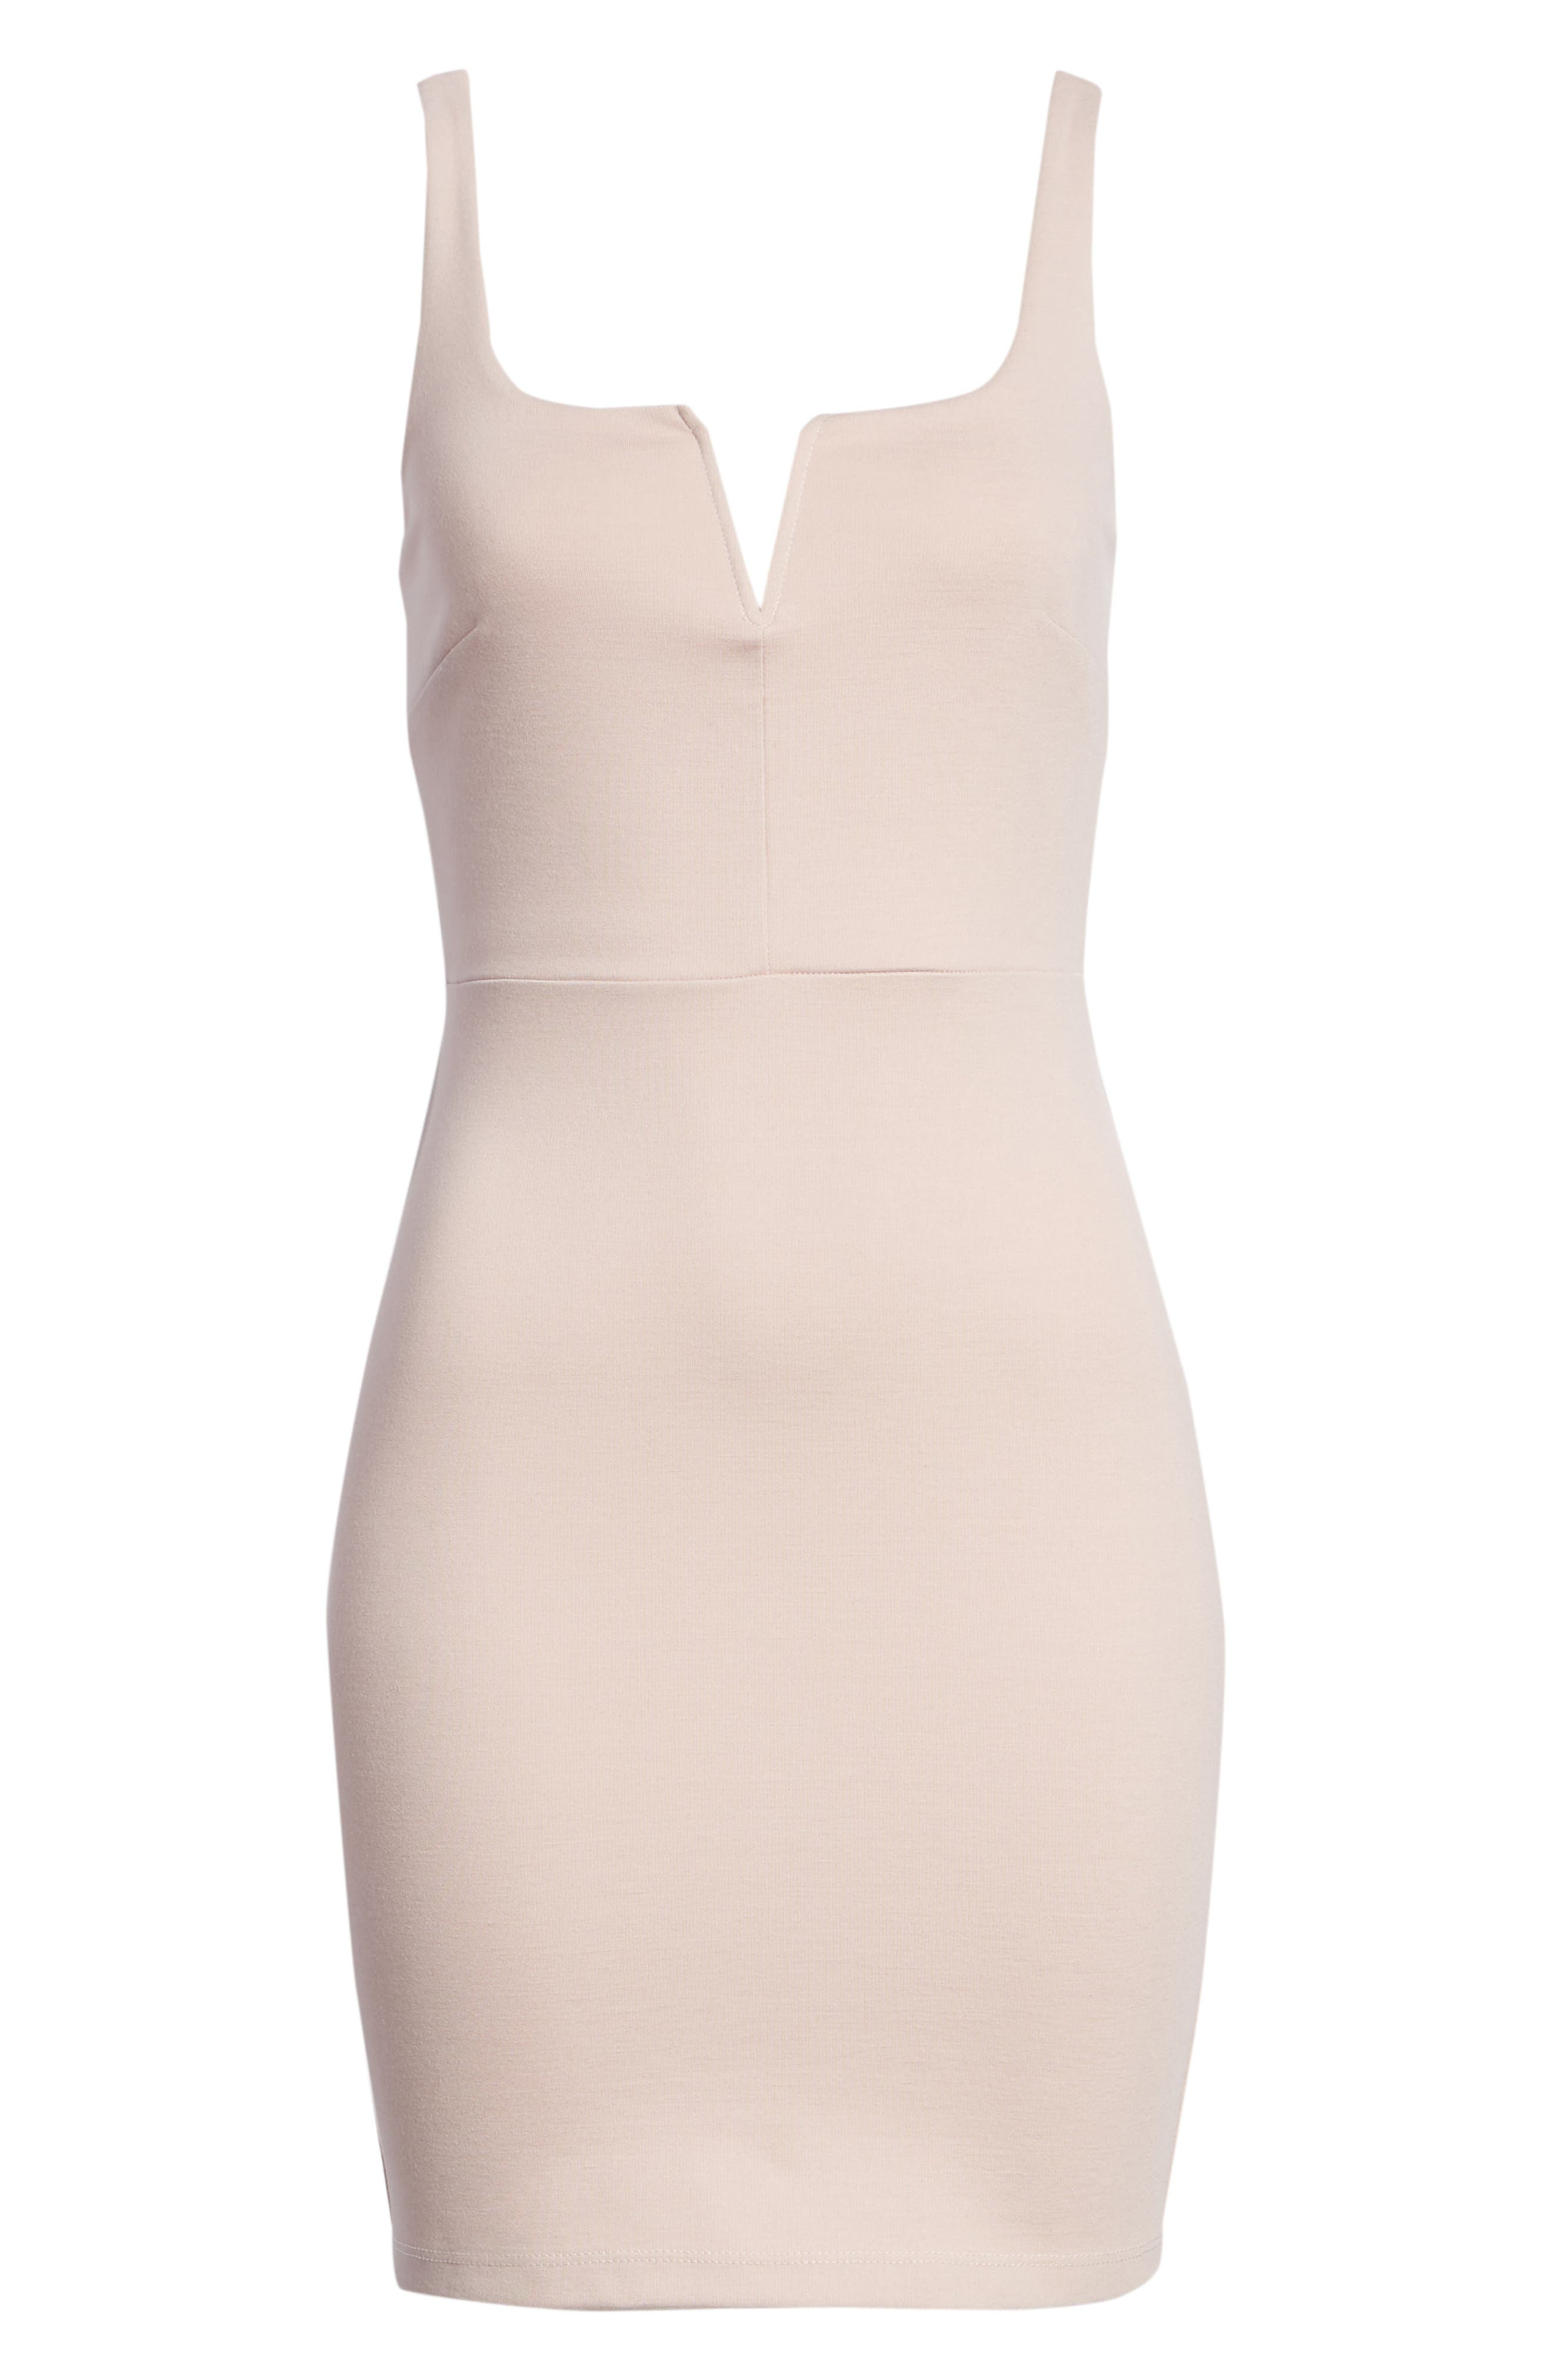 Body-Con Minidress,                             Alternate thumbnail 6, color,                             Dusty Rose